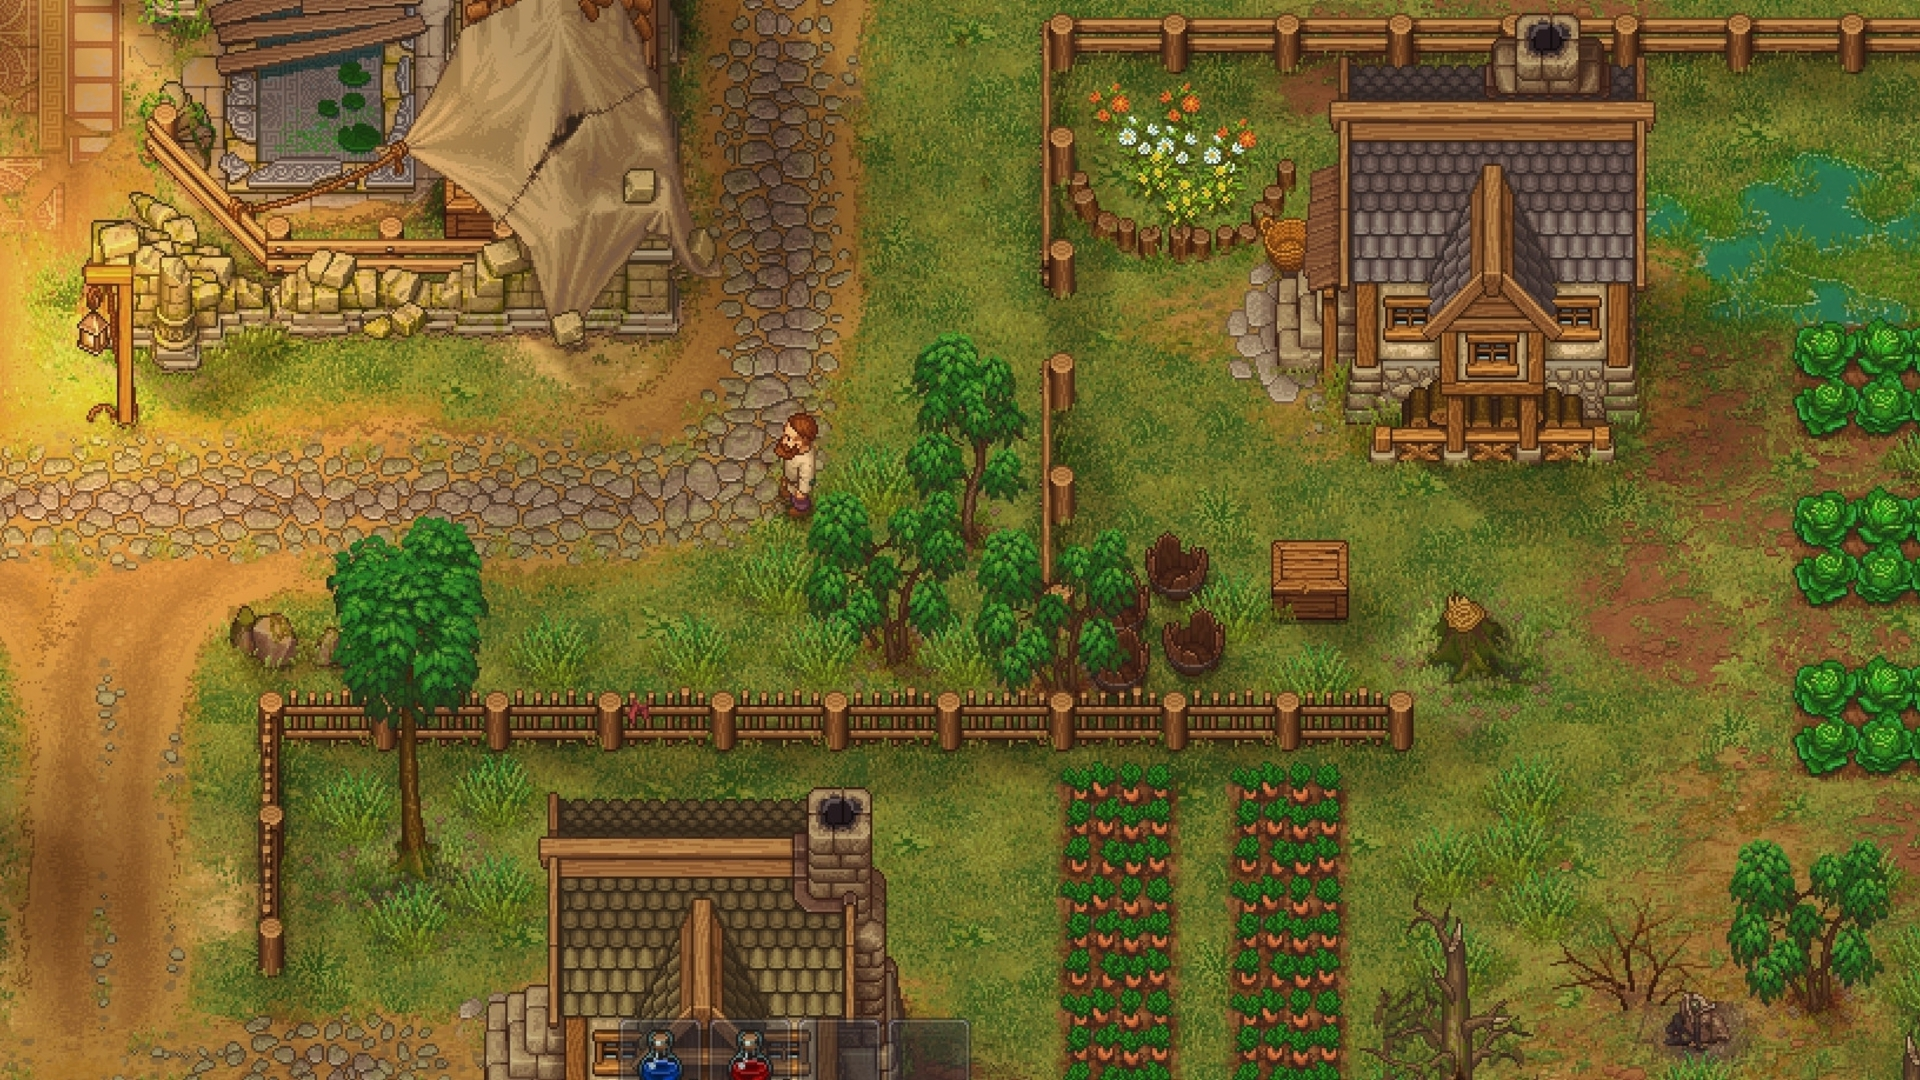 Graveyard Keeper Looks Like Stardew Valley But With Considerably More Corpses O Eurogamer